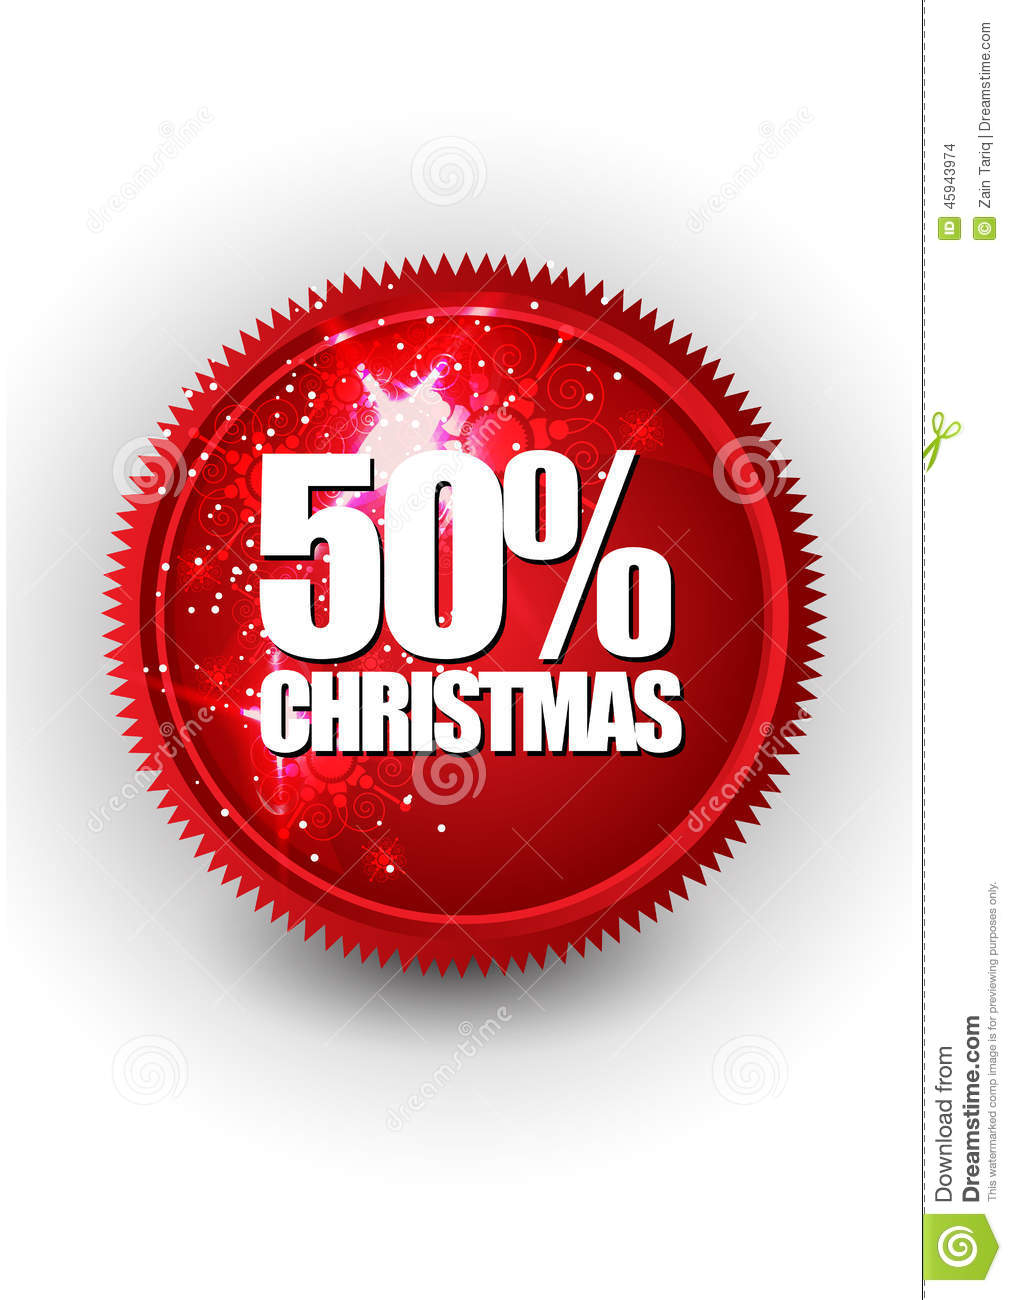 Merry Christmas Sale Or Discount Banner Stock Vector - Illustration ...